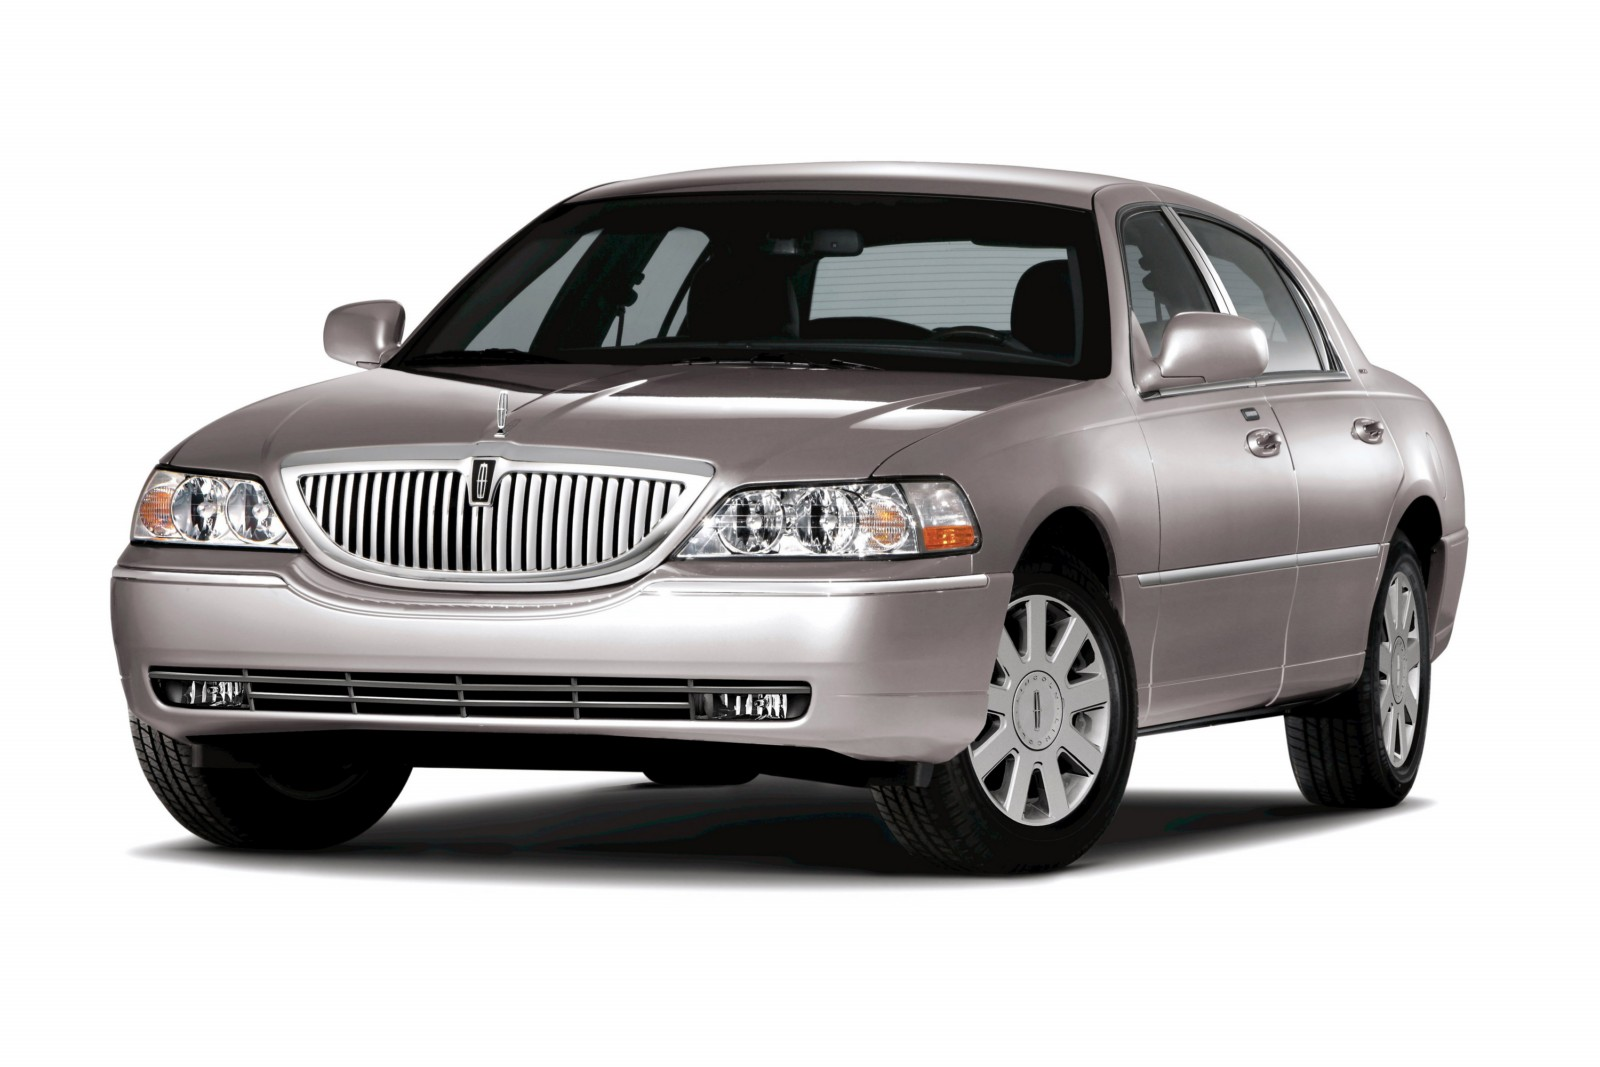 1990 Lincoln Town Car Review, Ratings, Specs, Prices, and Photos ...